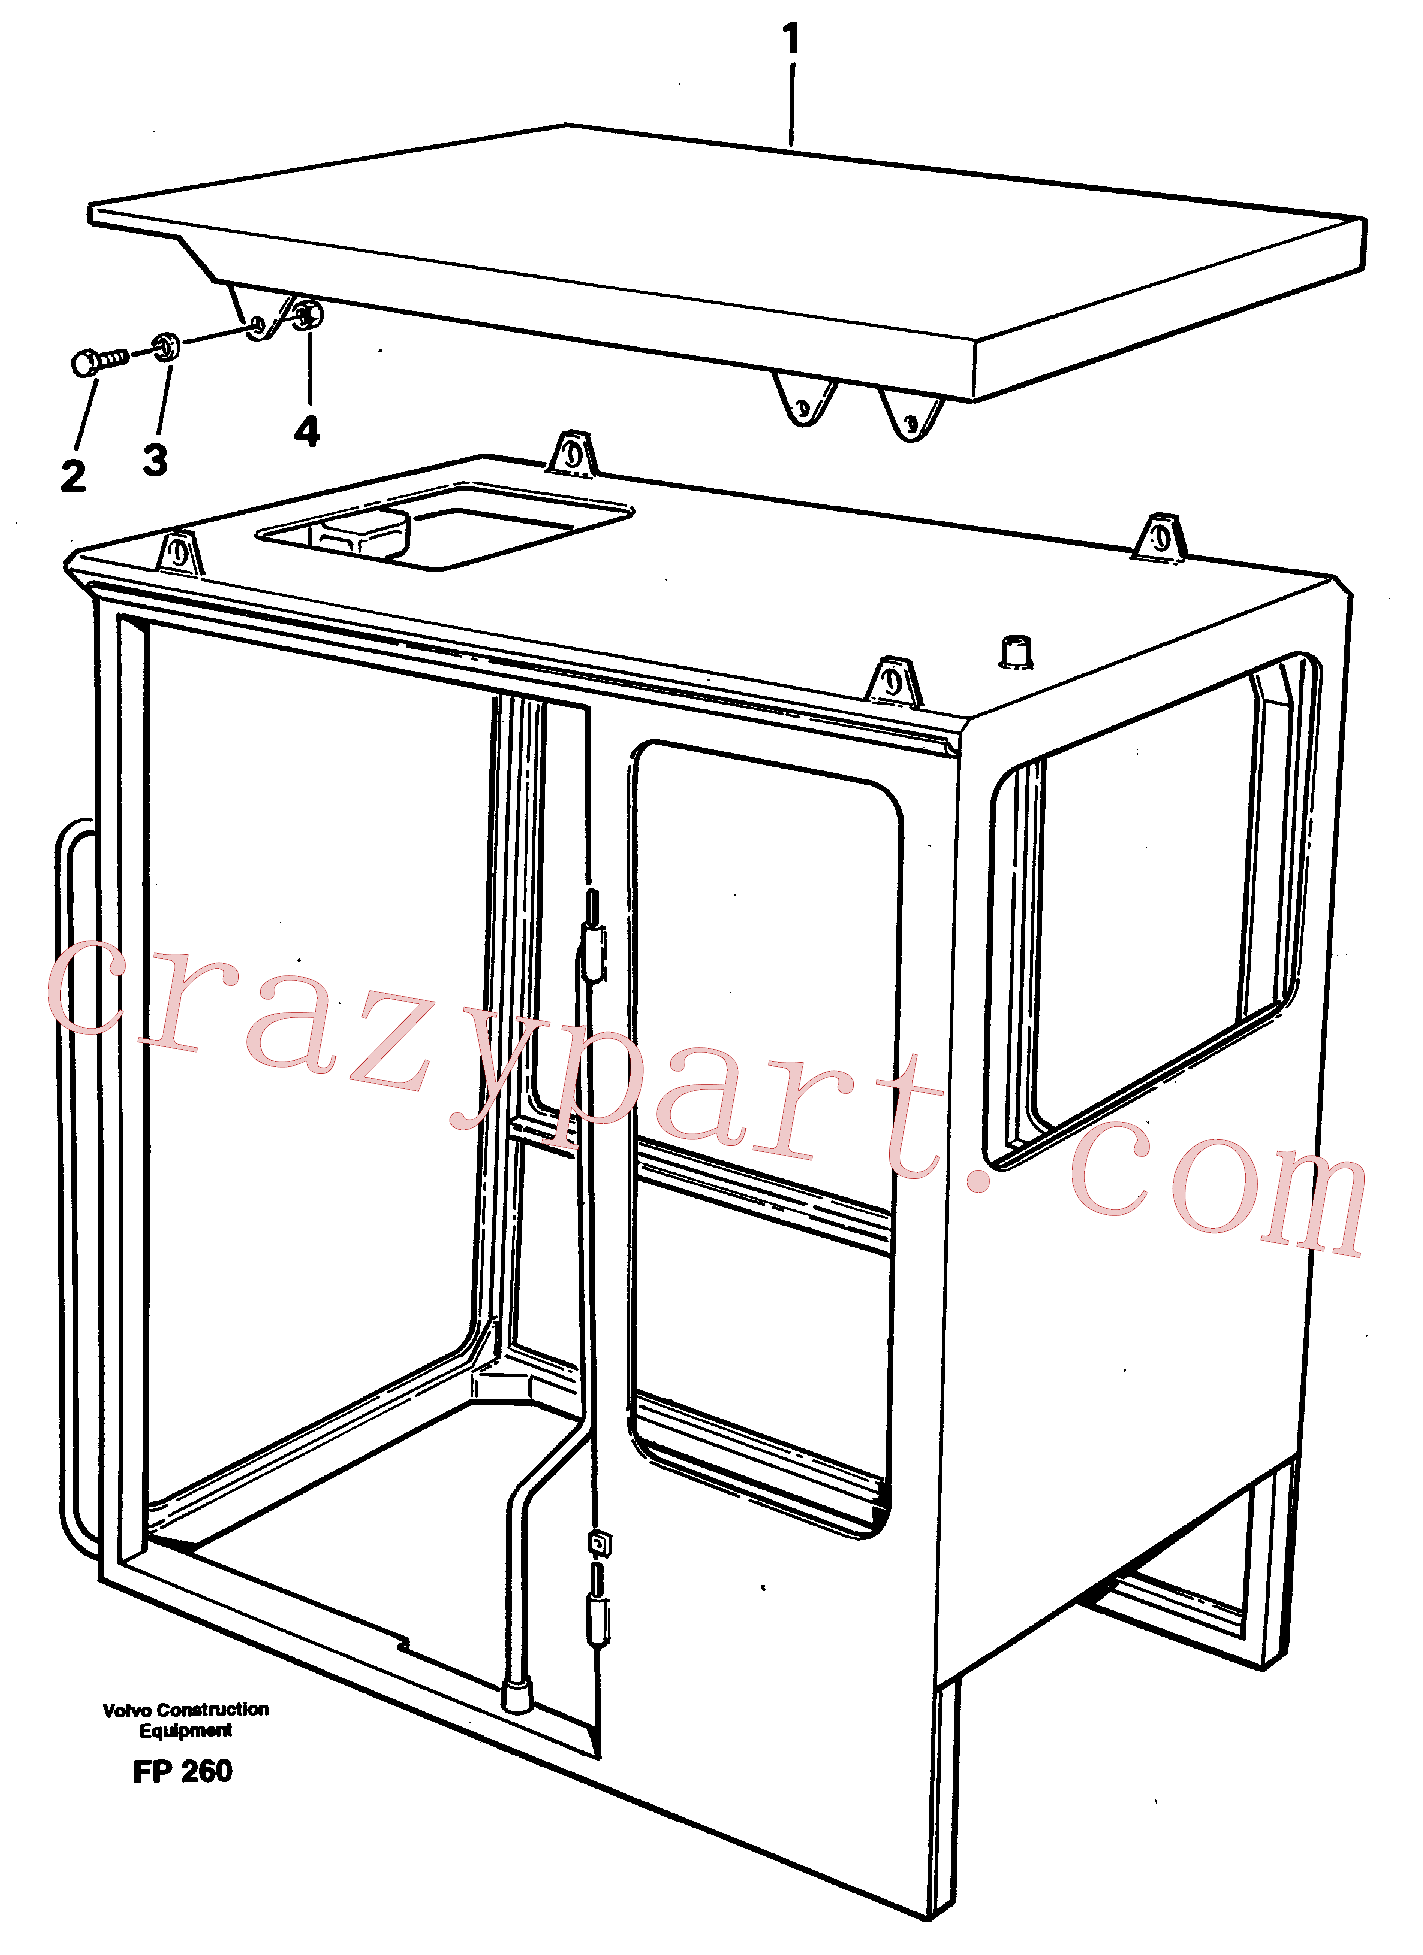 VOE14015147 for Volvo Tropic roof(FP260 assembly)